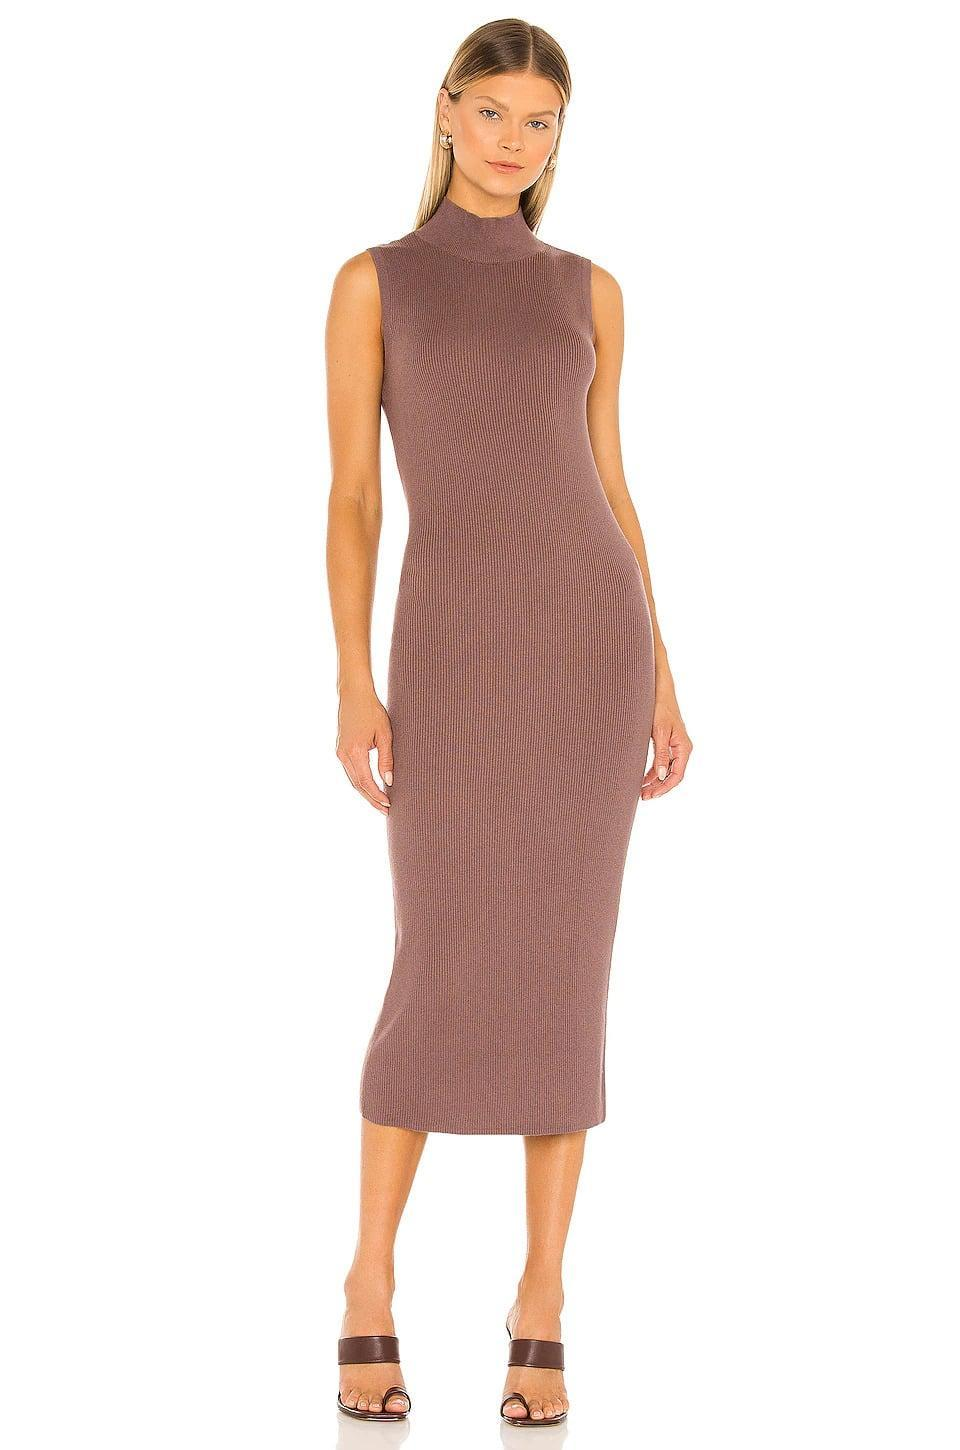 <p>We love the stunning mauve tone of this <span>Sanctuary Be Smooth Sweater Dress in Heather Mink</span> ($99). It's flattering, comfortable, and perfect for fall. Pair it with a cute jean jacket or a stylish leather jacket for an elevated look.</p>